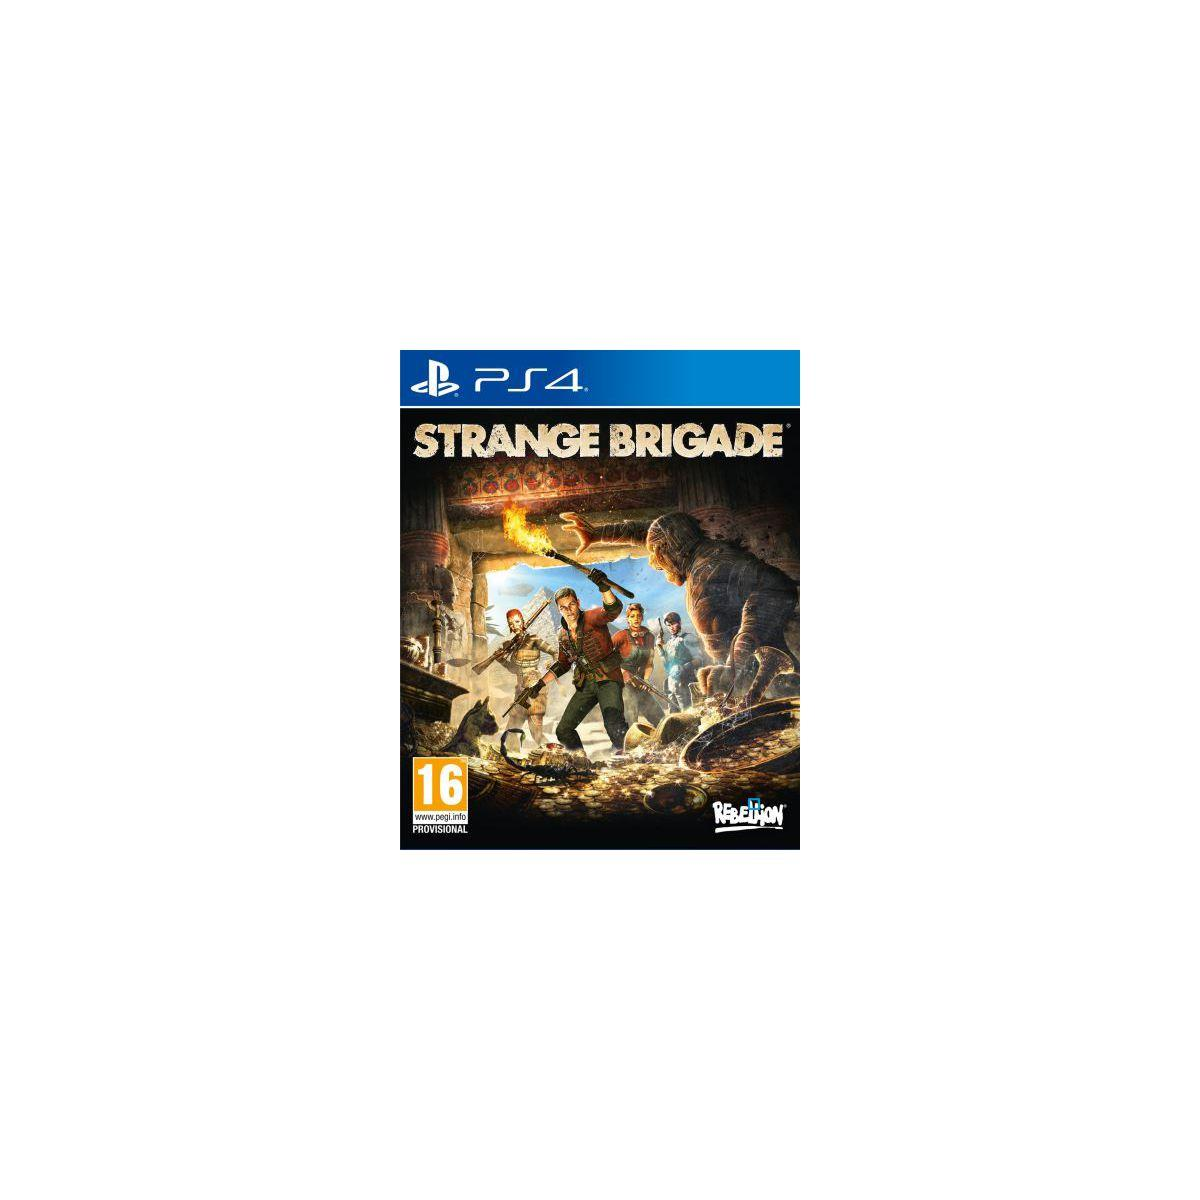 Jeu ps4 just for games strange brigade (photo)